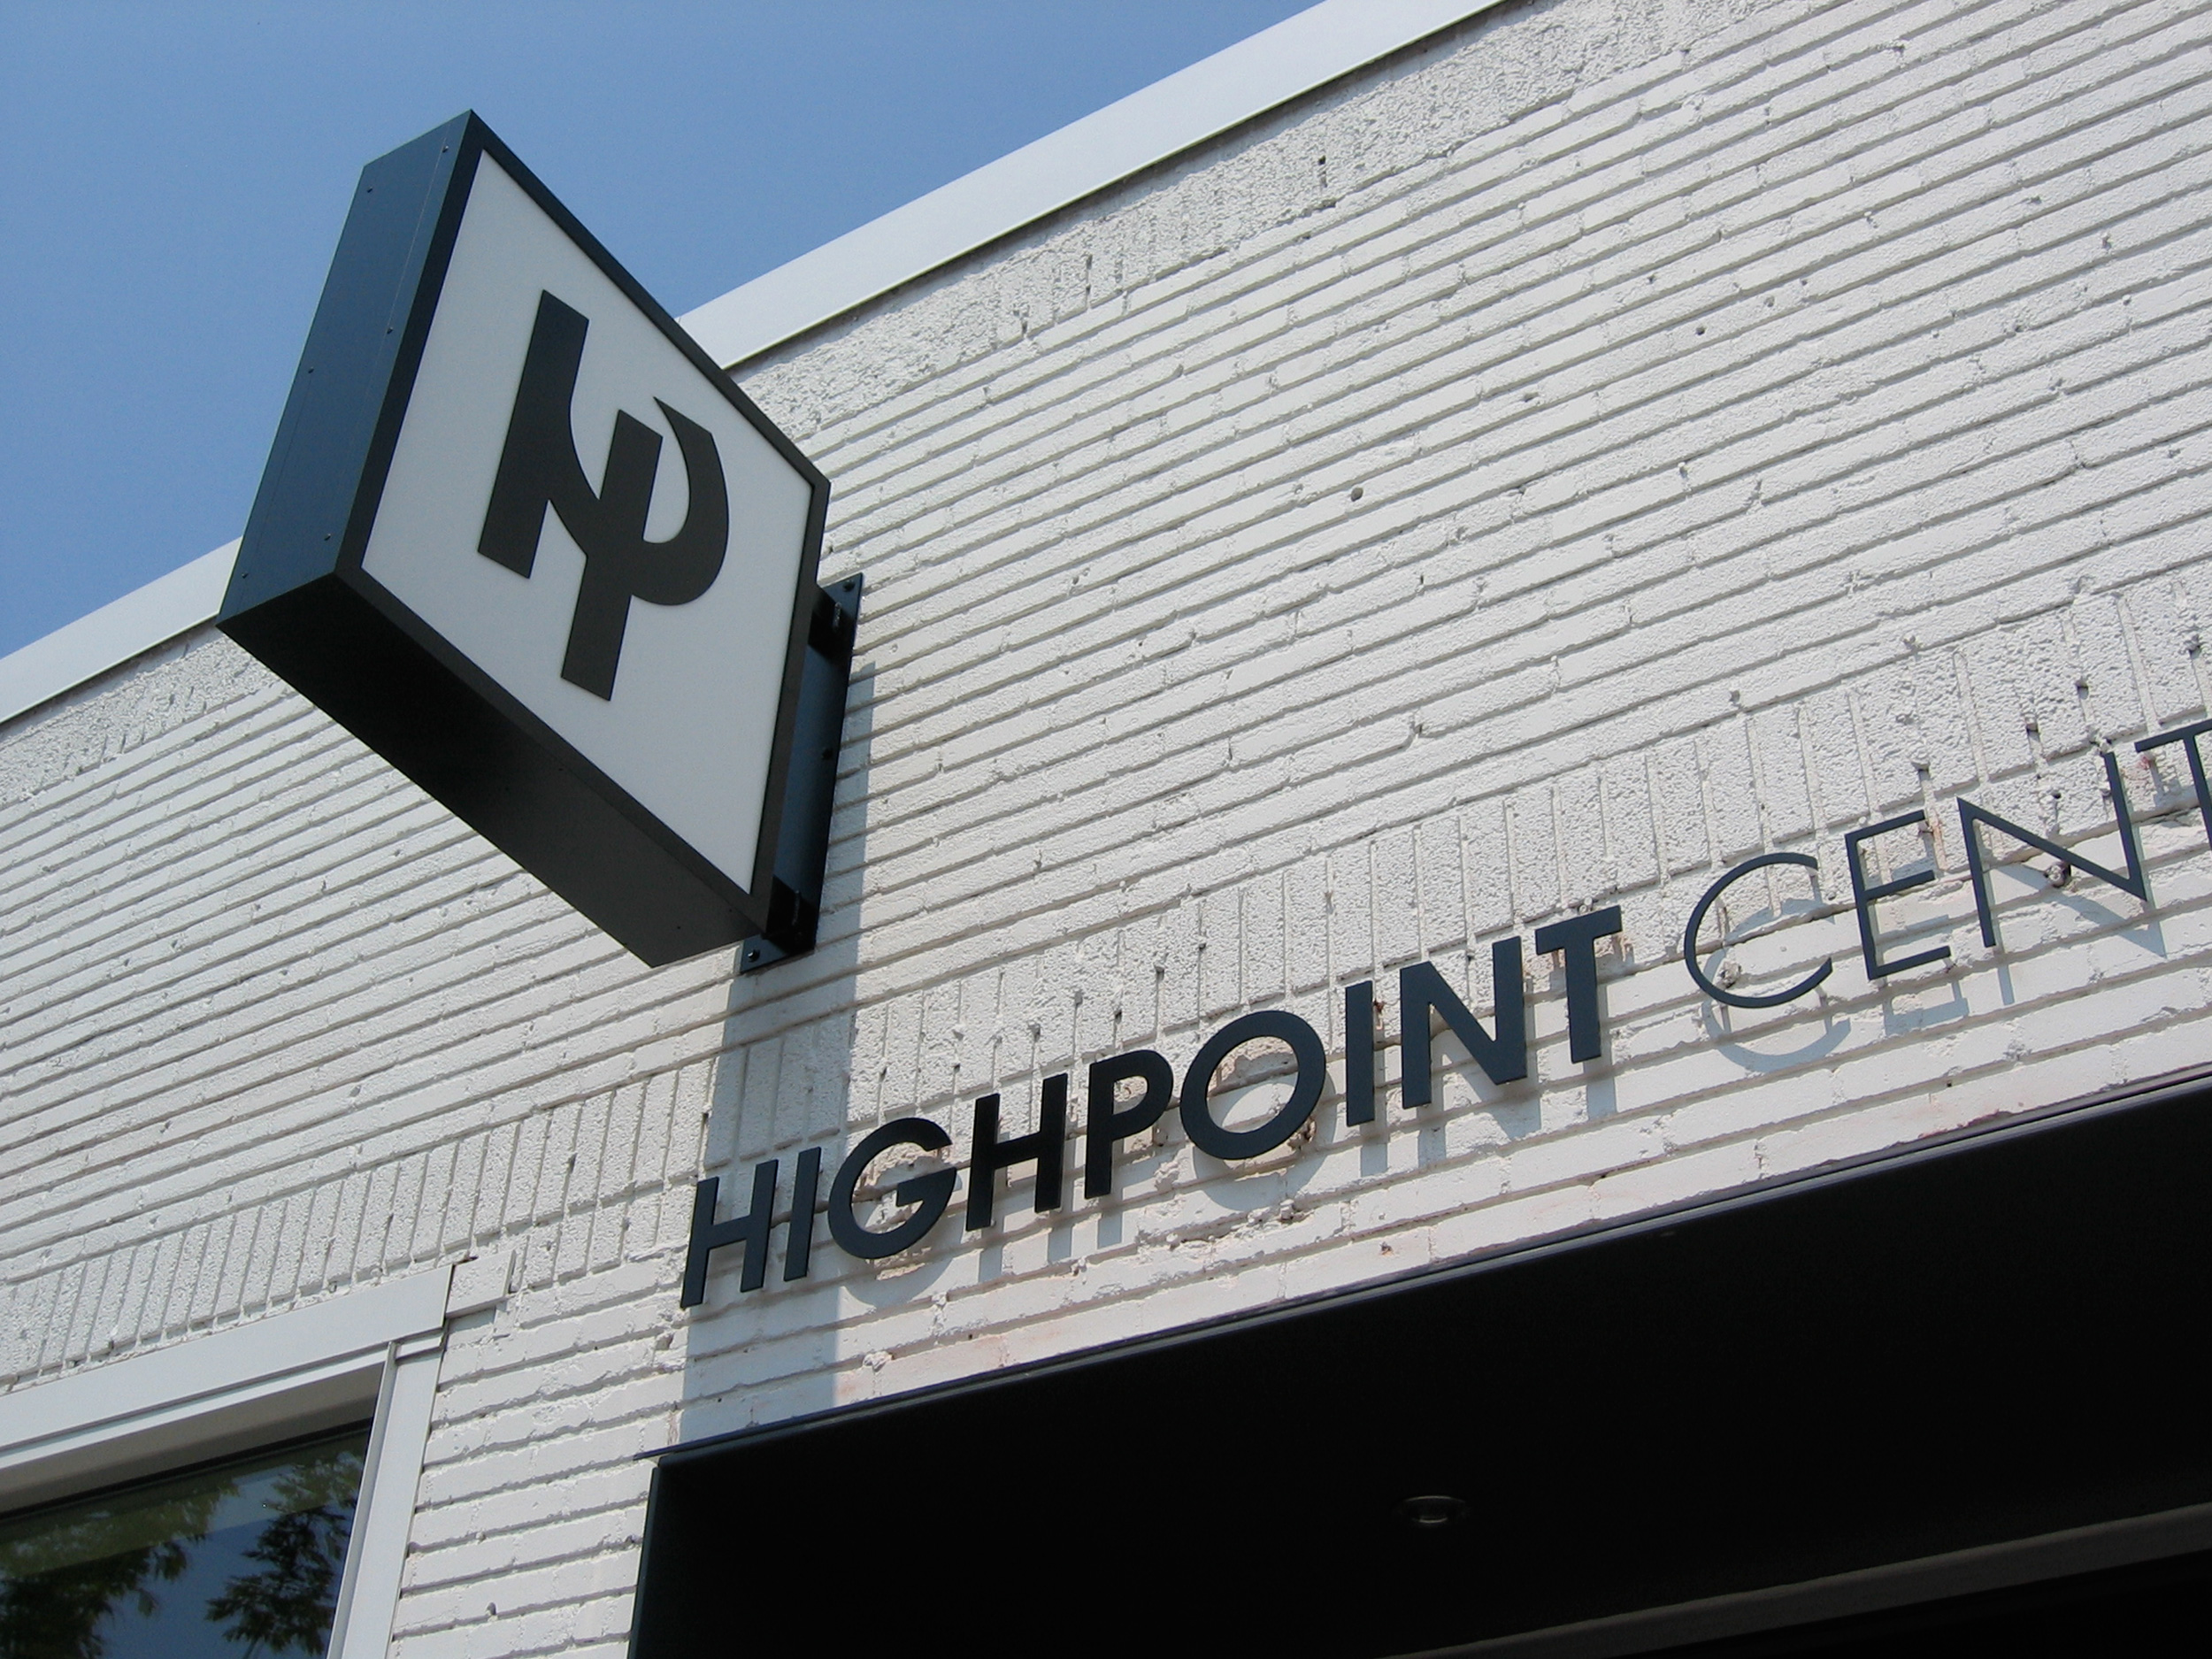 Highpoint signage